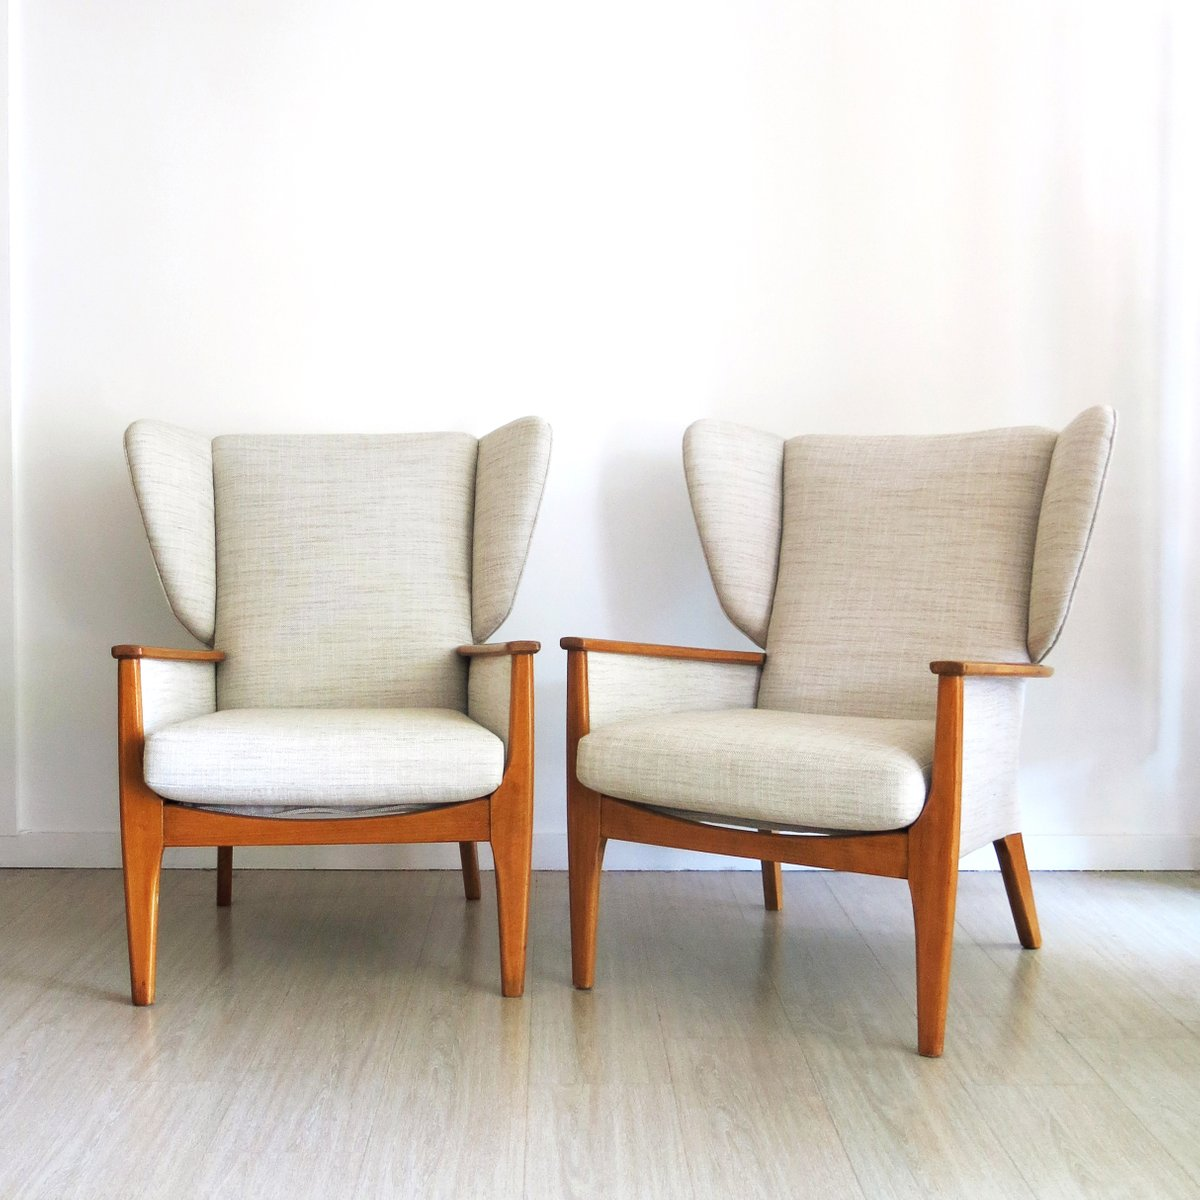 1960s Missoni Wingback Chair At 1stdibs: Vintage Wingback Chairs From Parker Knoll, 1960s, Set Of 2